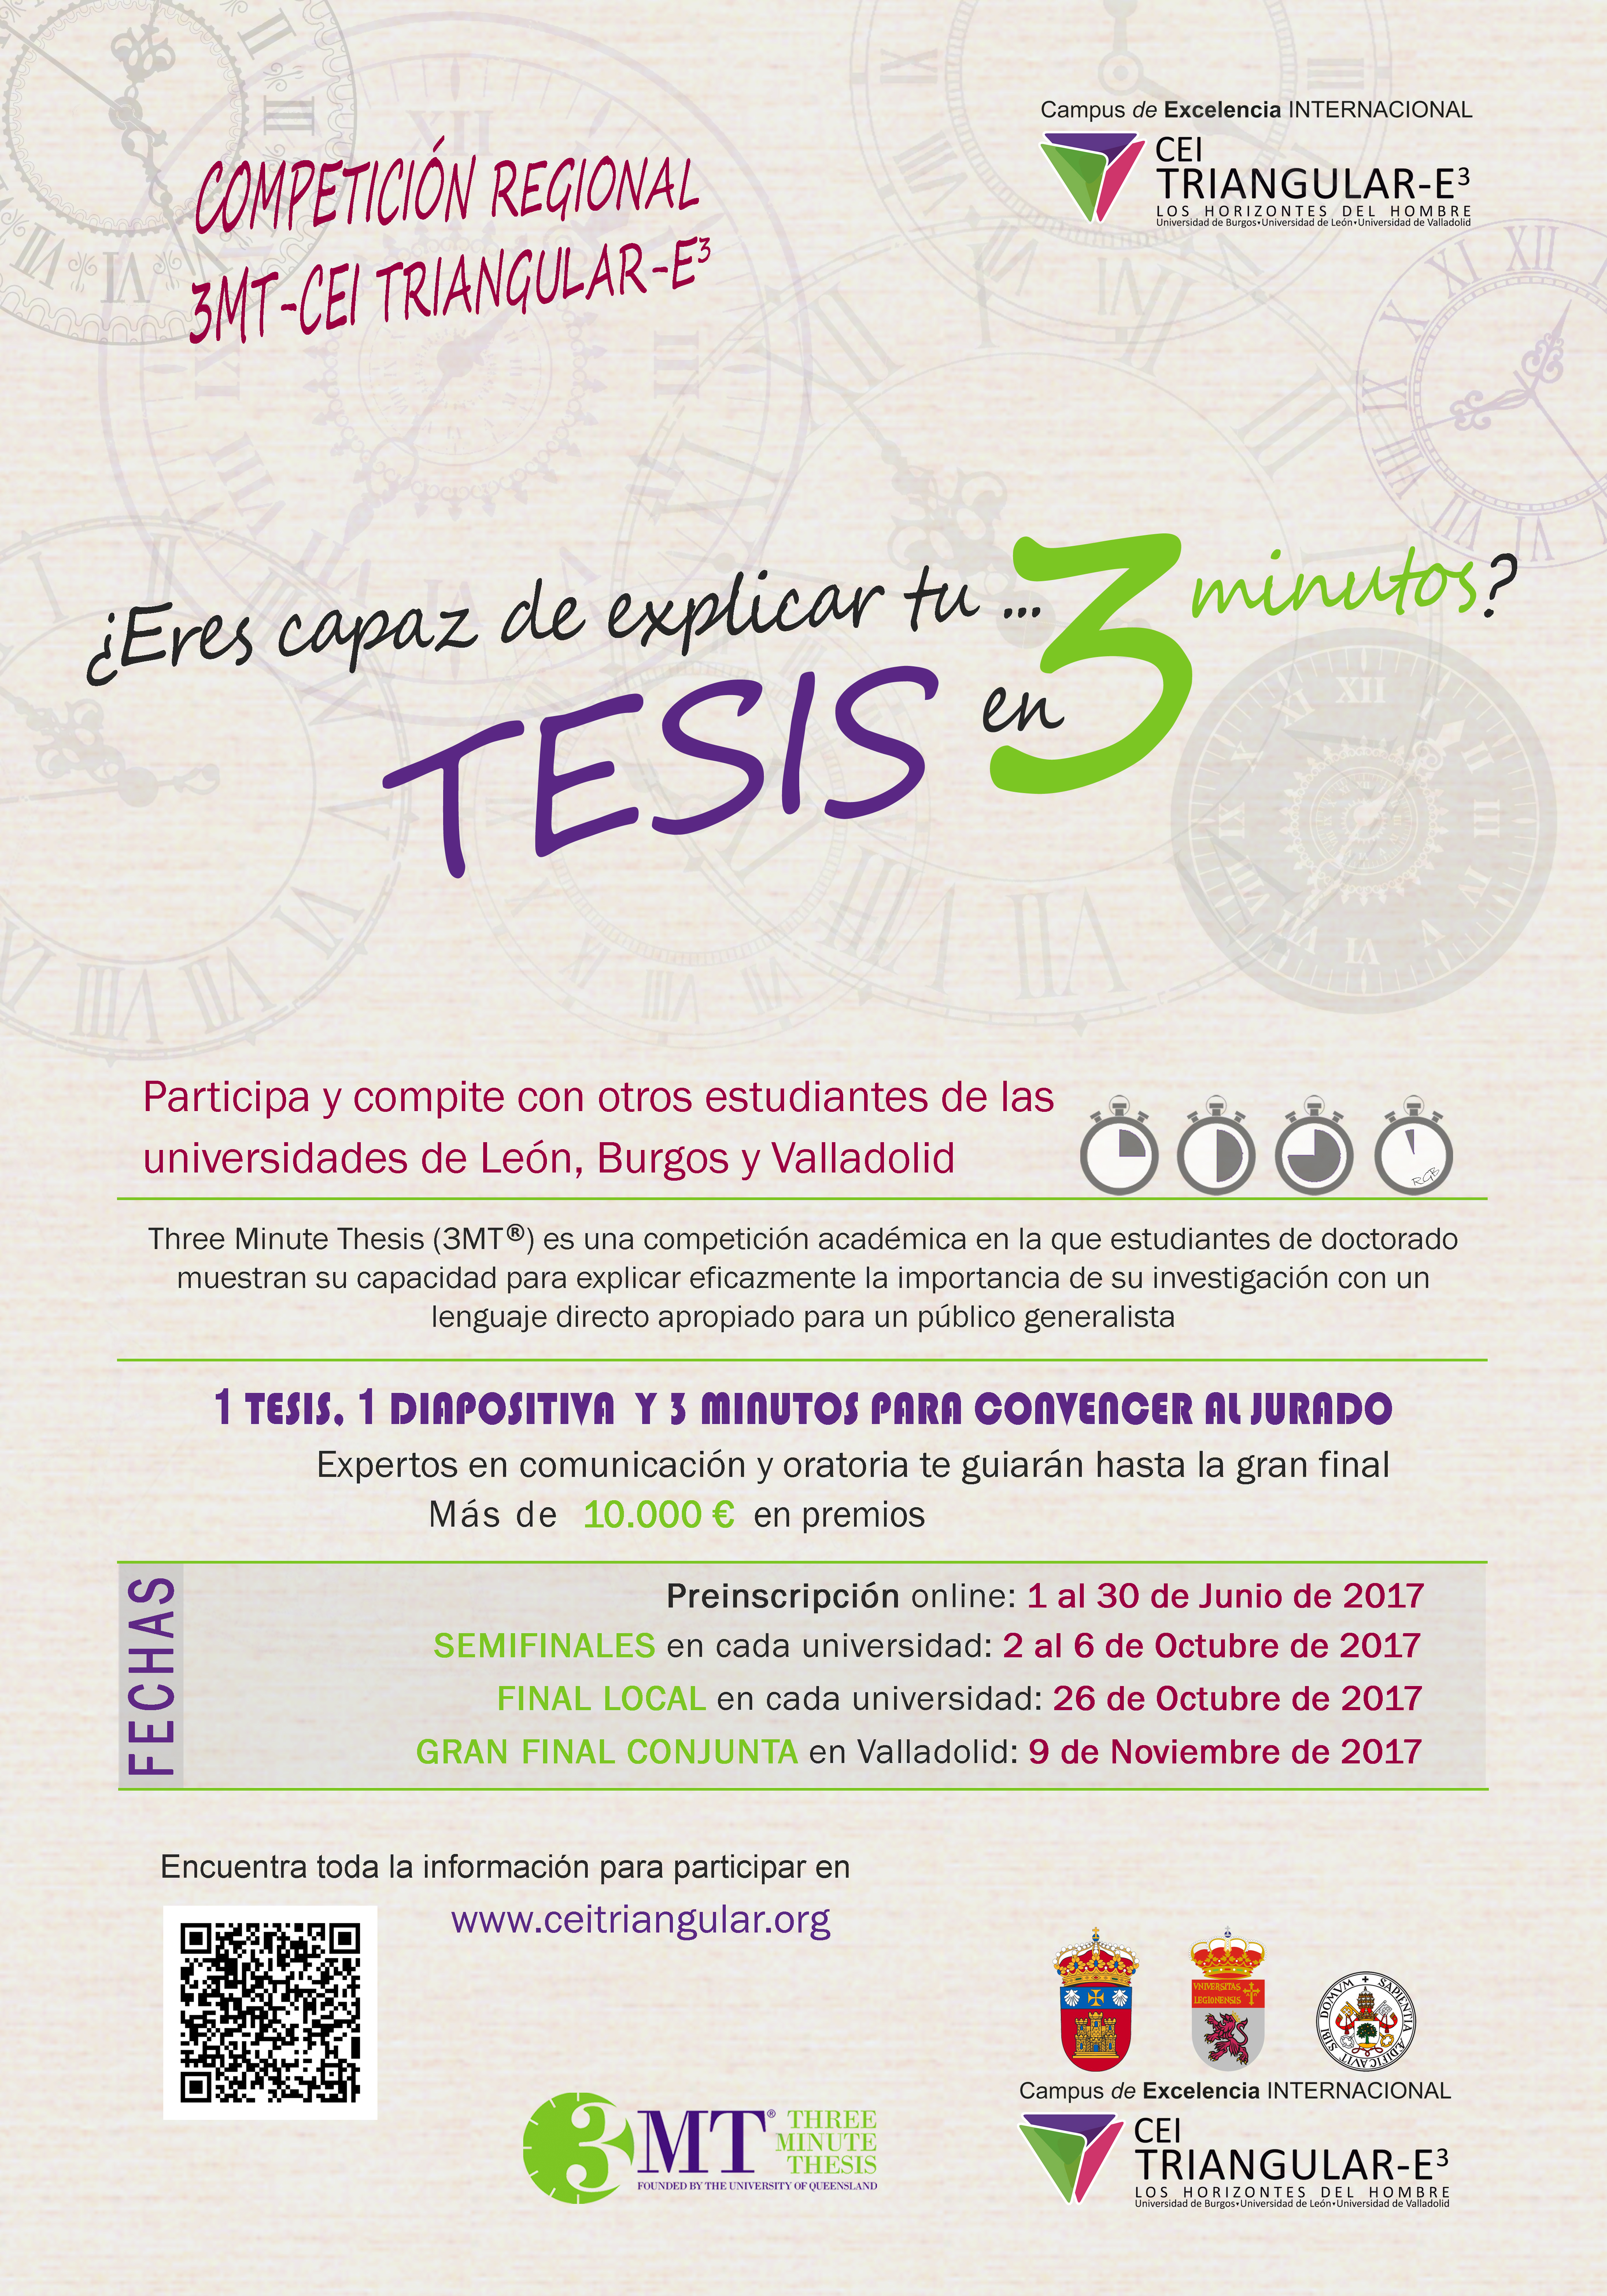 Concurso 3 Minute Thesis - CEI Triangular-E3